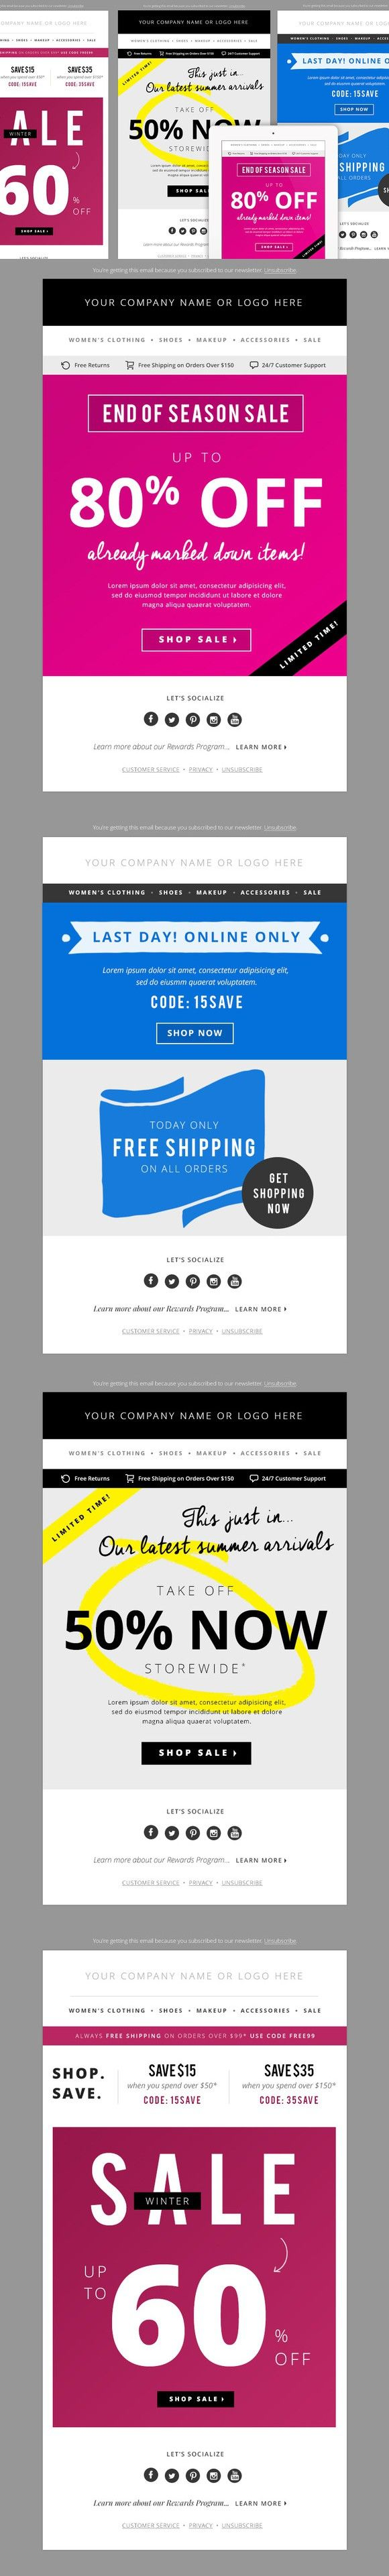 1000+ ideas about E Mail Vorlage on Pinterest | Templates and Shops